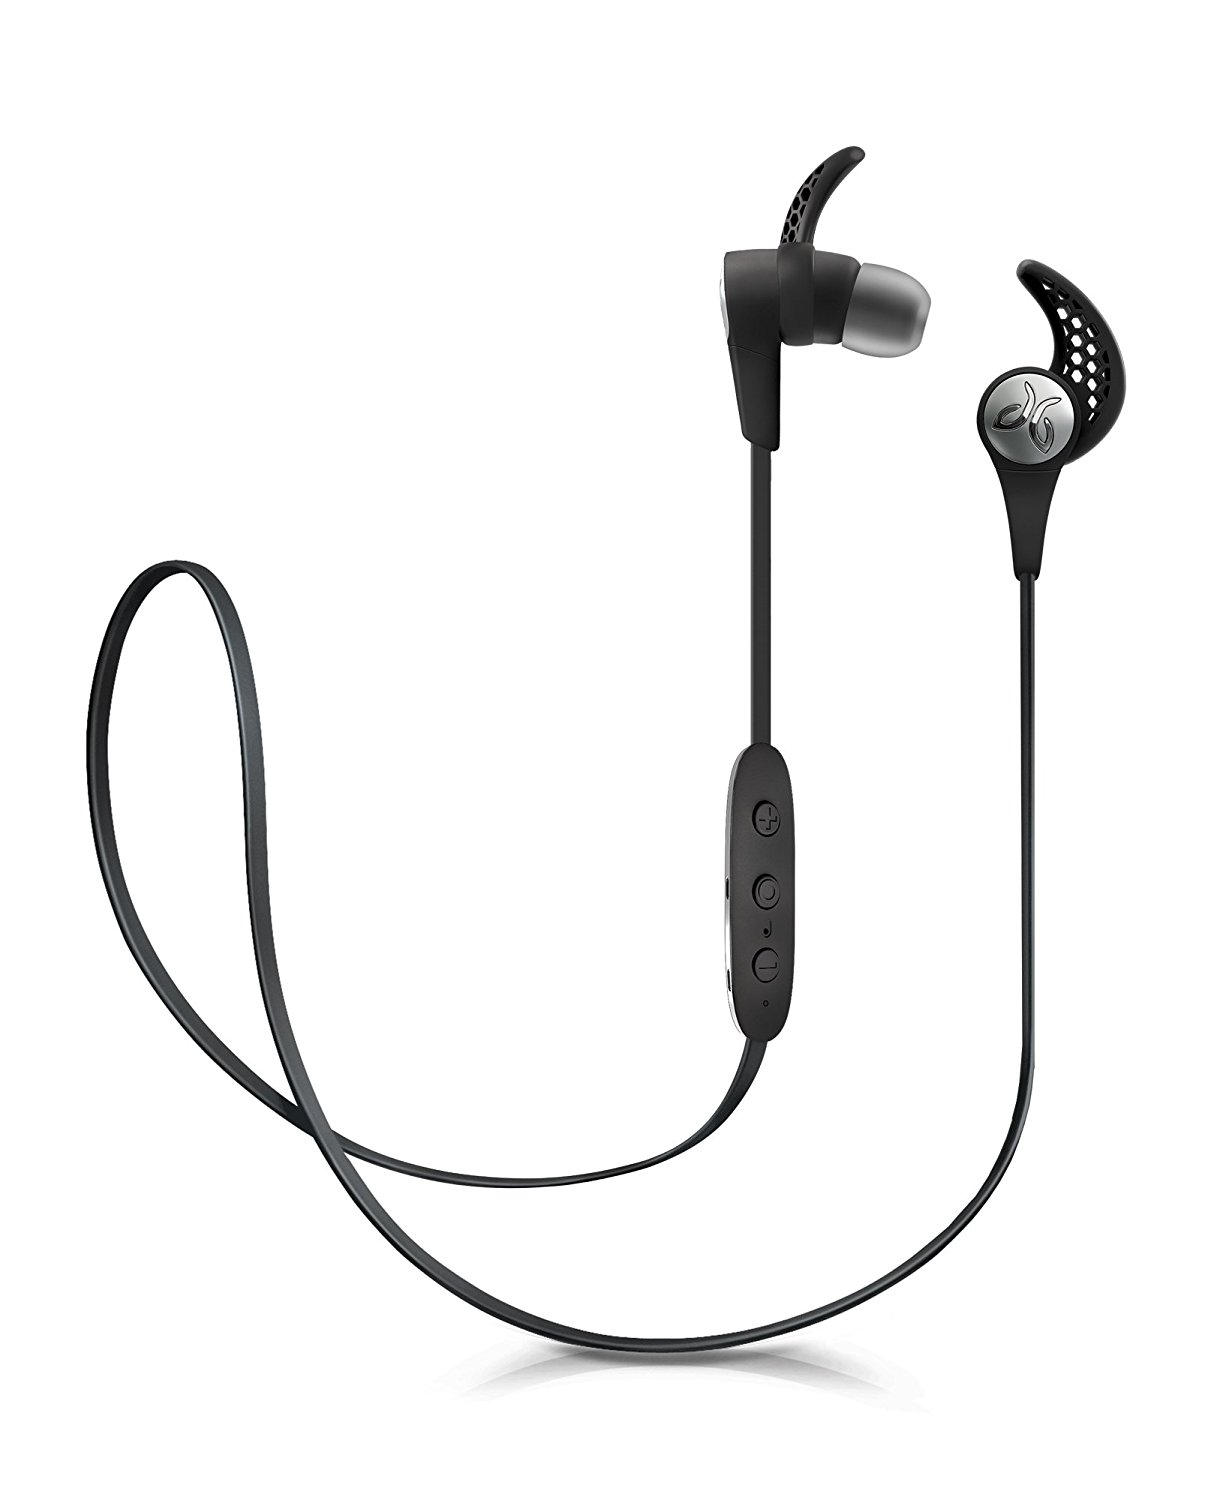 wireless headphones gym lifting exercise intense music podcast